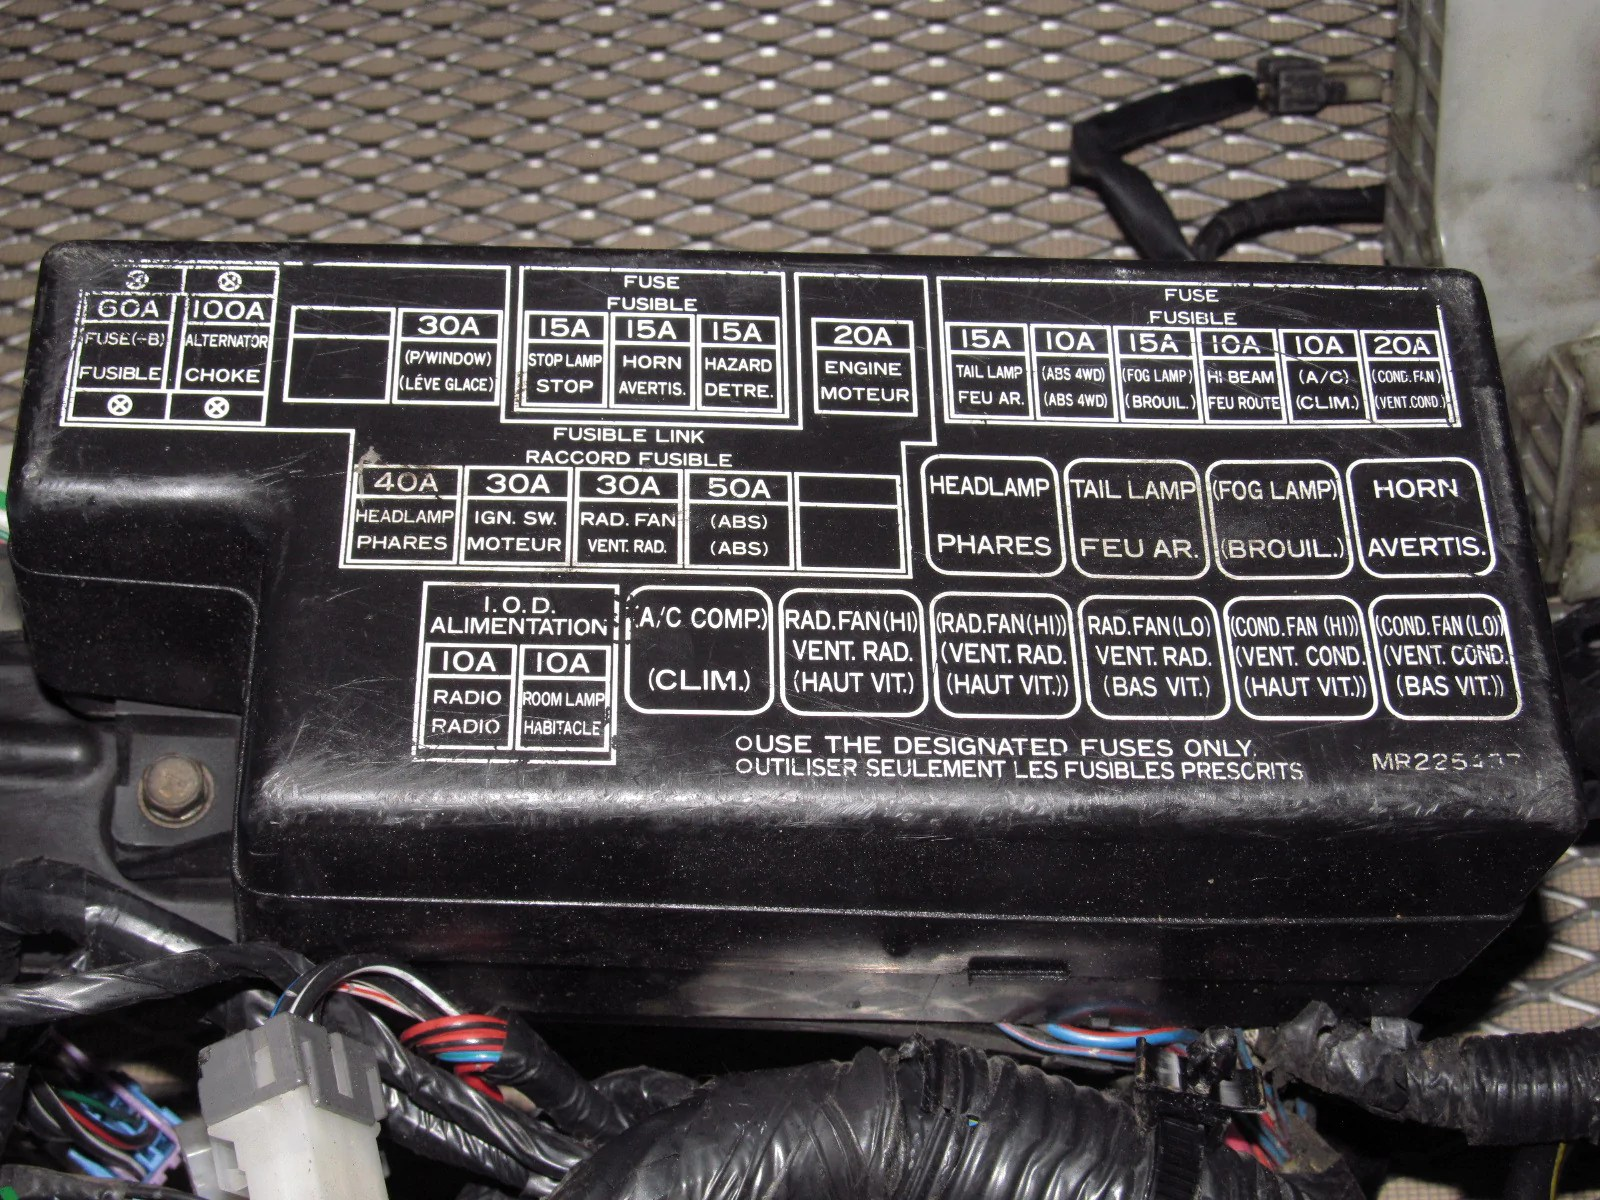 eclipse gst fuse diagram wiring diagrams konsult 98 mitsubishi eclipse fuse box diagram 98 mitsubishi eclipse fuse box diagram [ 1600 x 1200 Pixel ]